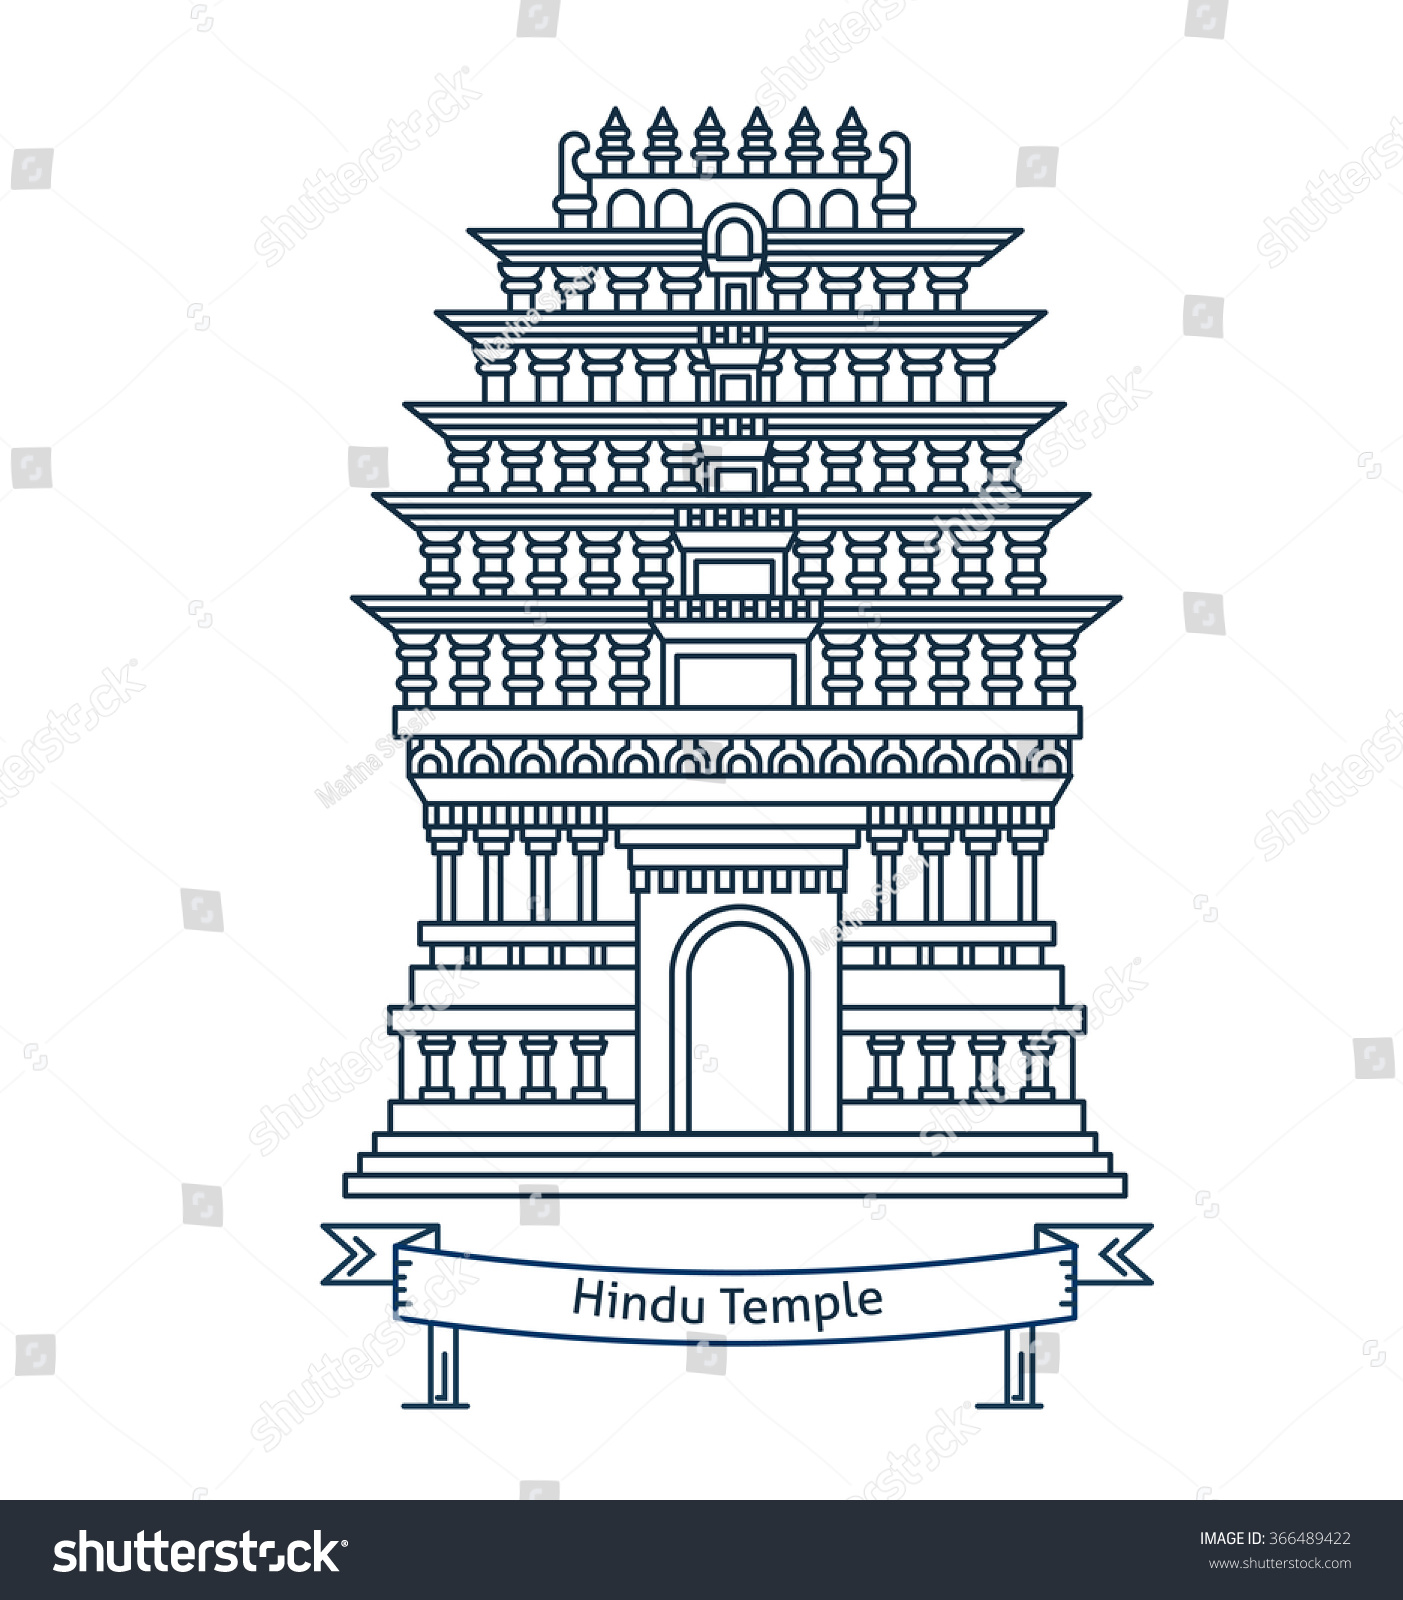 Hindu temple hinduism symbol indian temple stock vector 366489422 hindu temple hinduism symbol indian temple flat line vector architecture illustration outlined biocorpaavc Gallery